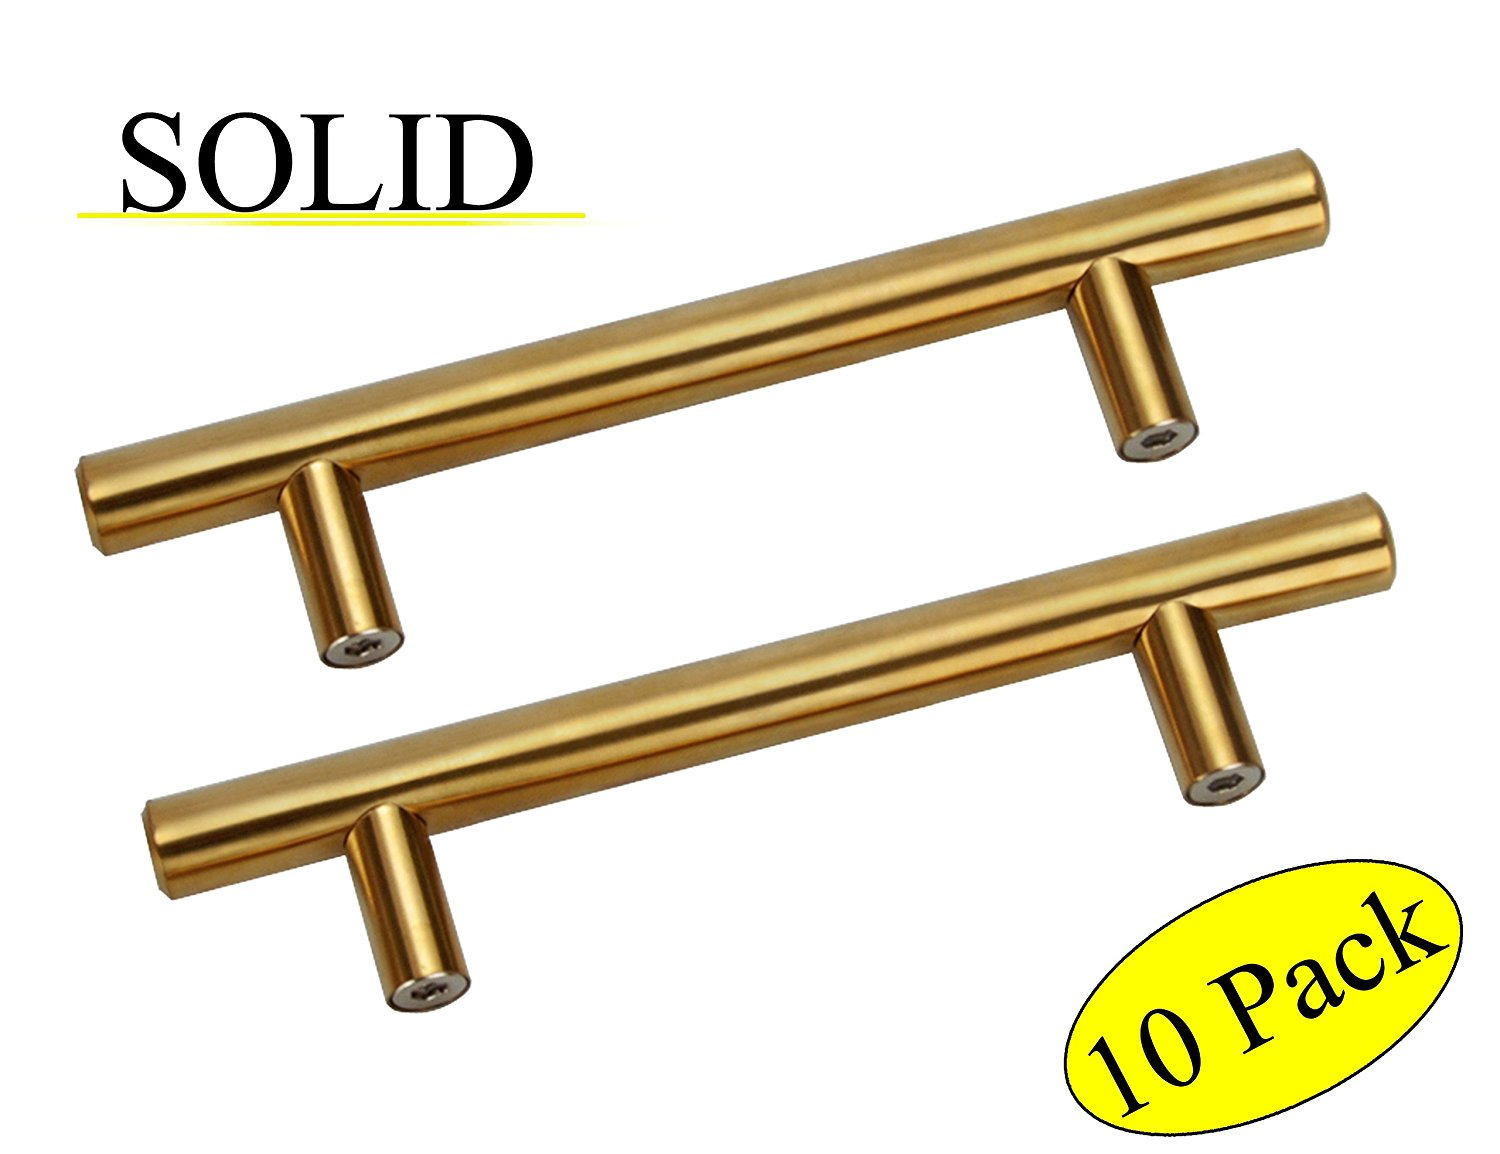 Gold SOLID Stainless Steel Cabinet Pulls with Hole Distance 3IN(76mm),Overall Length 5IN(127mm) bar handles for Furniture Drawer,Wardrobe Kitchen Cupboard Door Handle,10PCS,SOLID-CL-149GD76